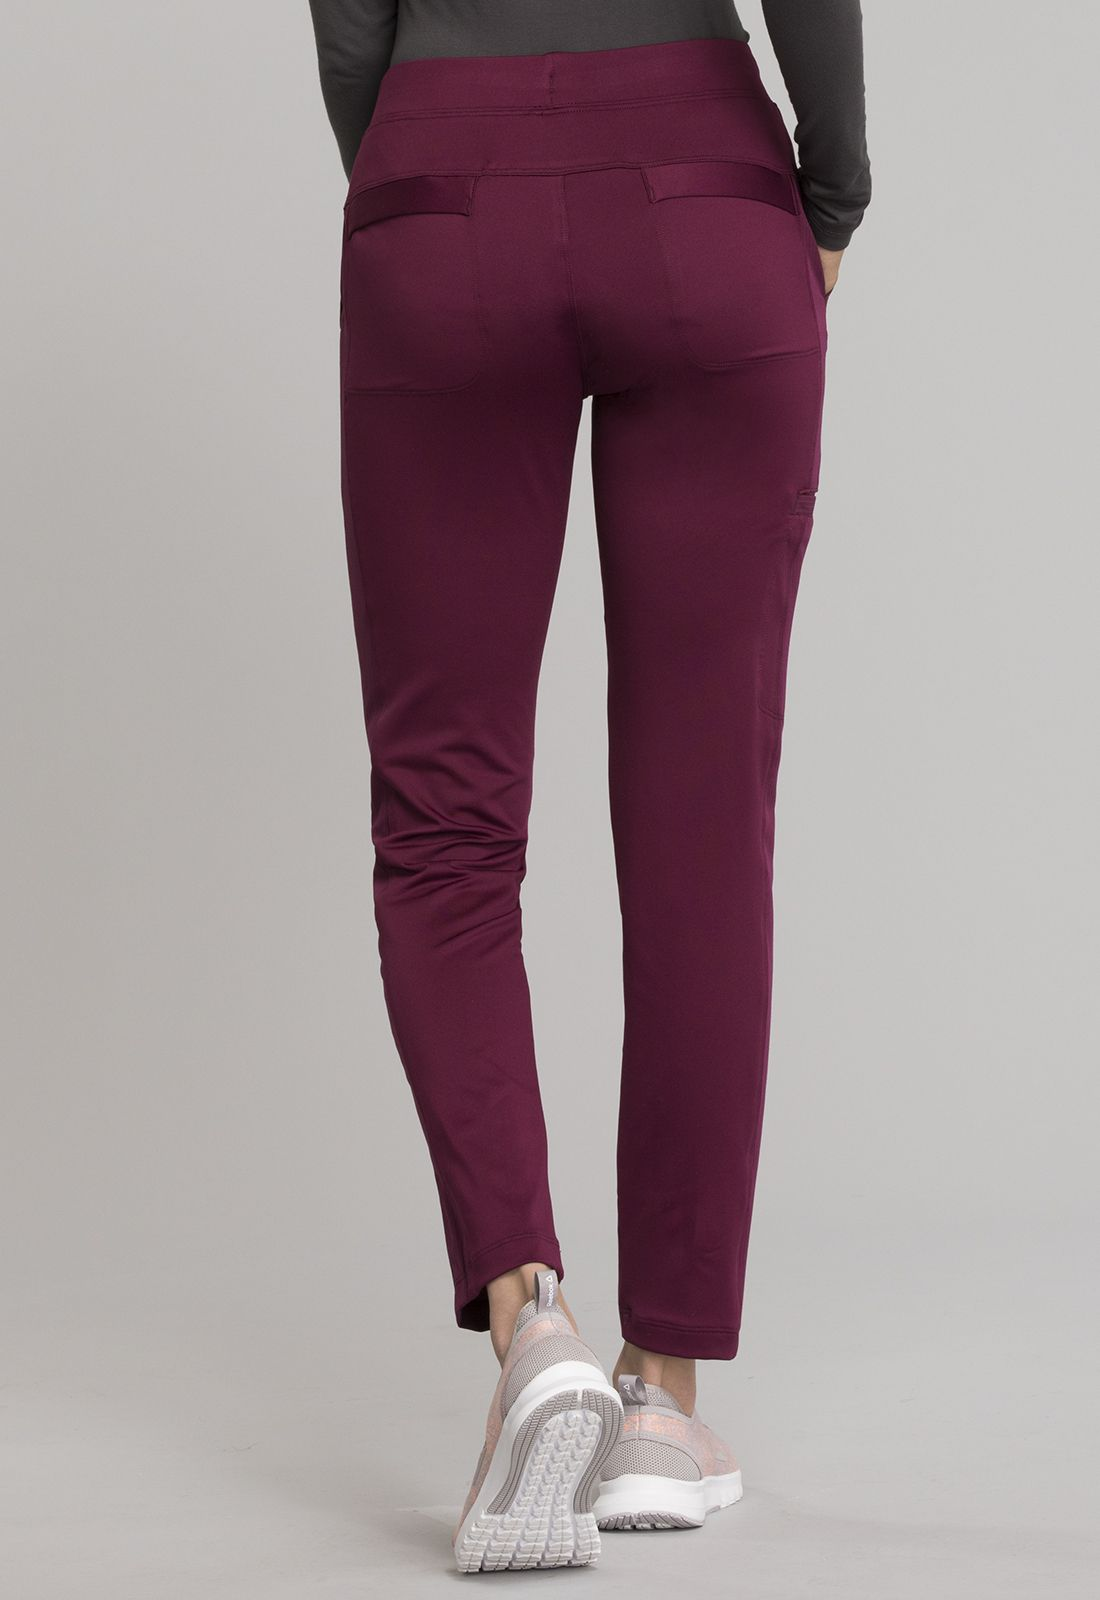 https://medcloth.by/images/stories/virtuemart/product/cherokee-ck055-wine-4.jpg